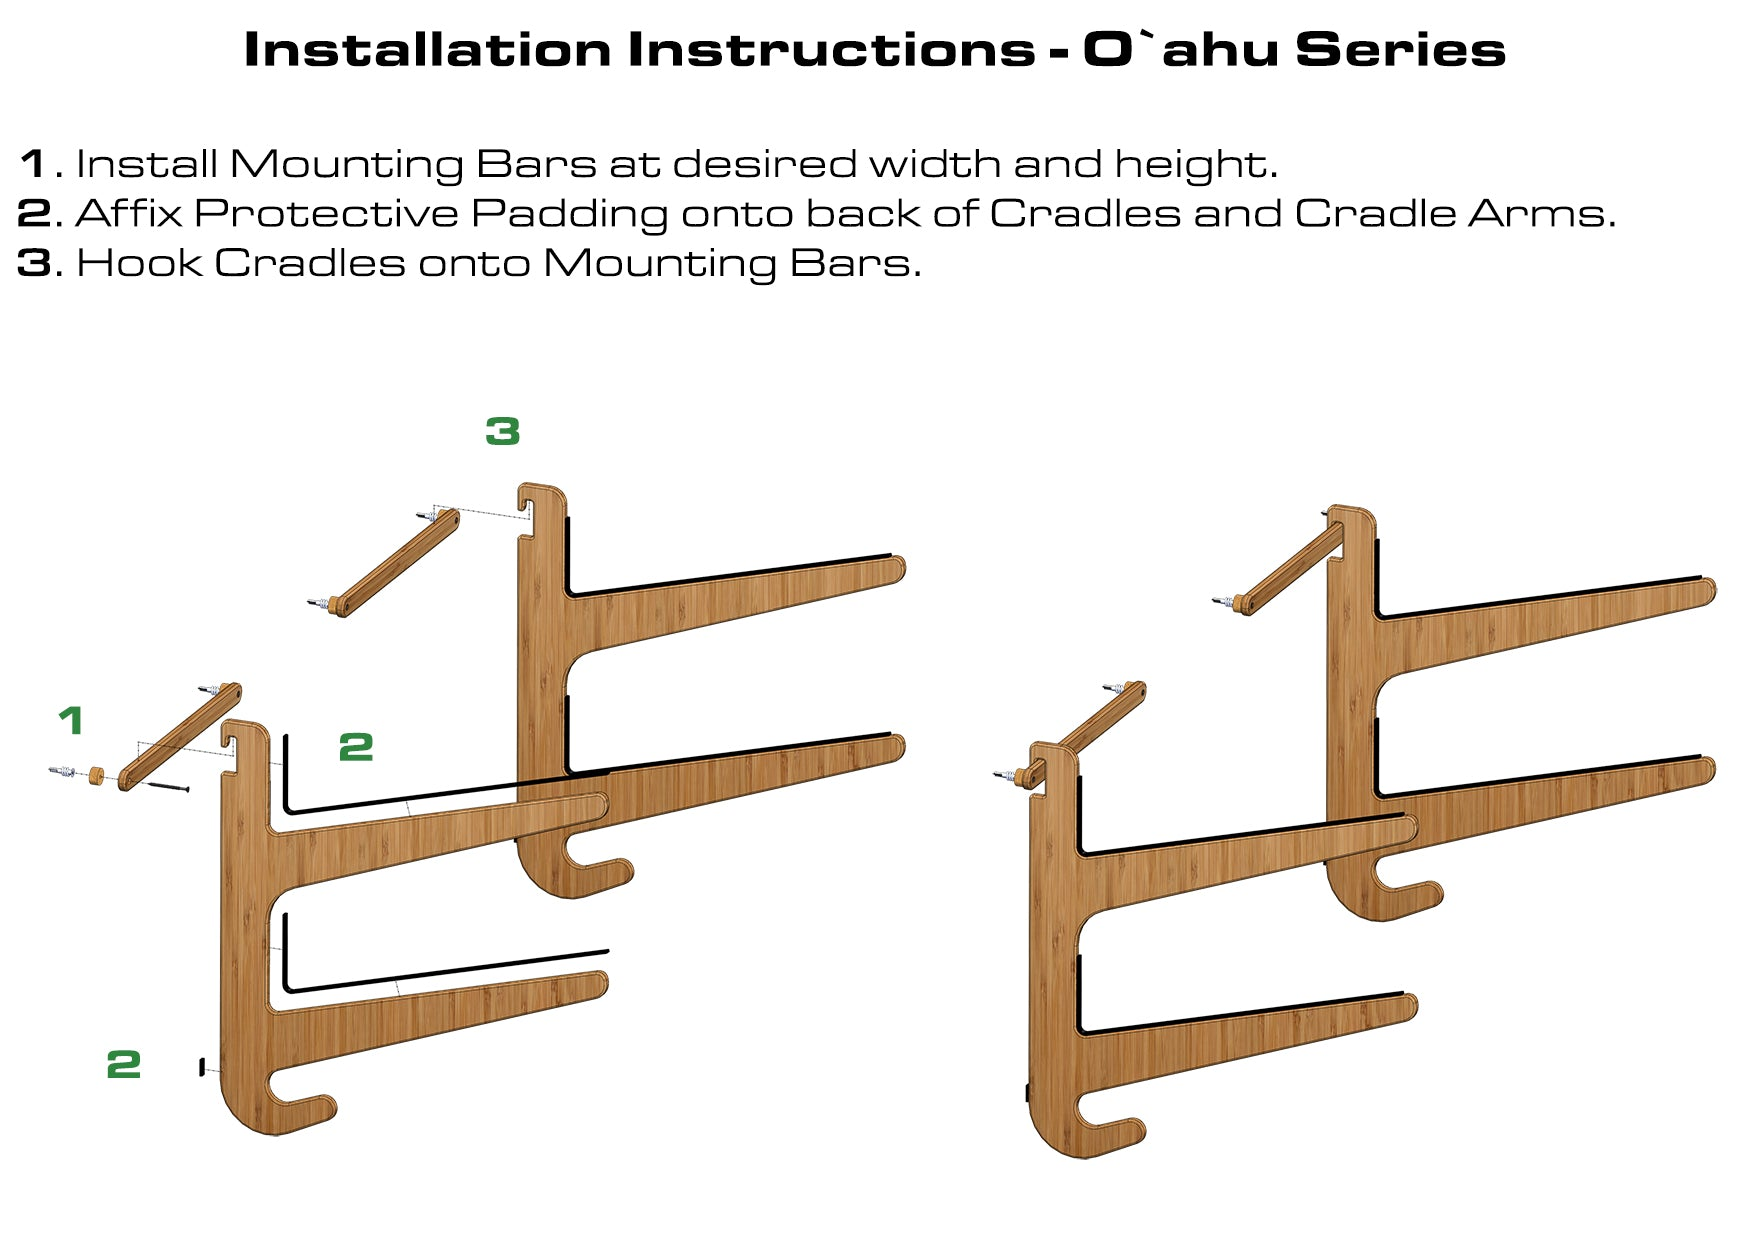 Paddleboard Rack Installation Instructions - Bamboo SUP Rack by Grassracks